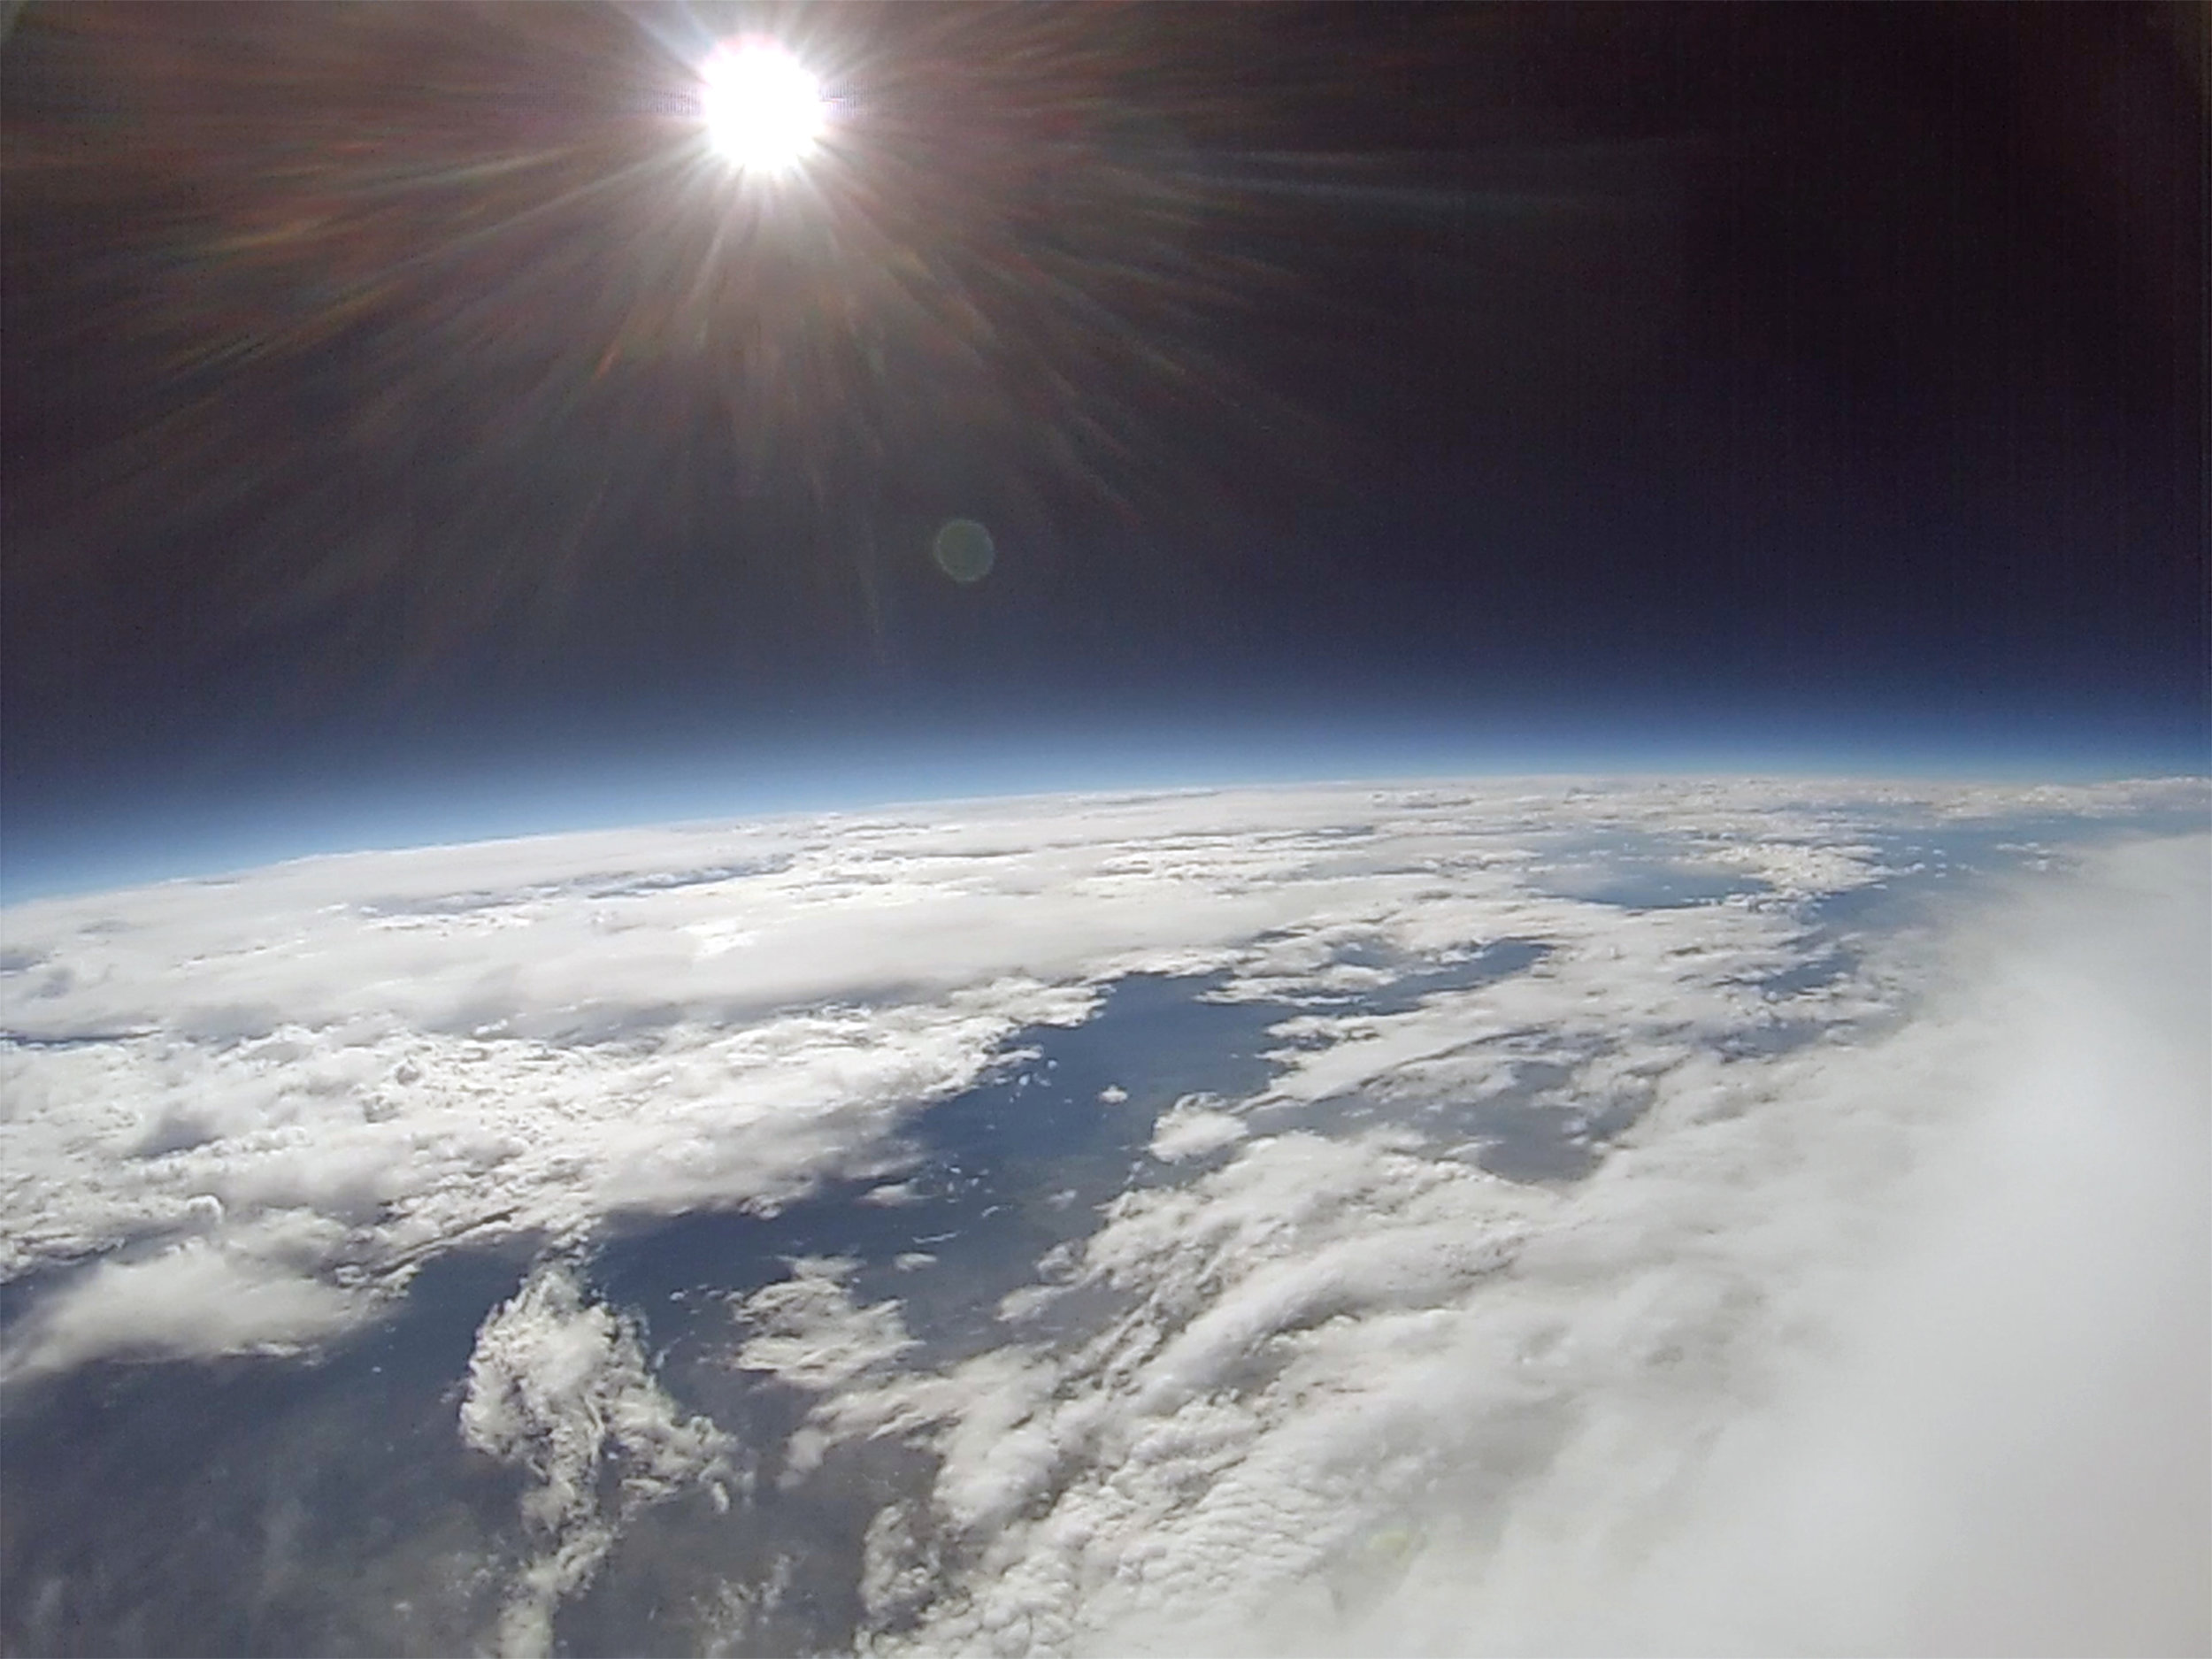 A frame grabbed from the GoPro video from an altitude of around 50,000 feet.